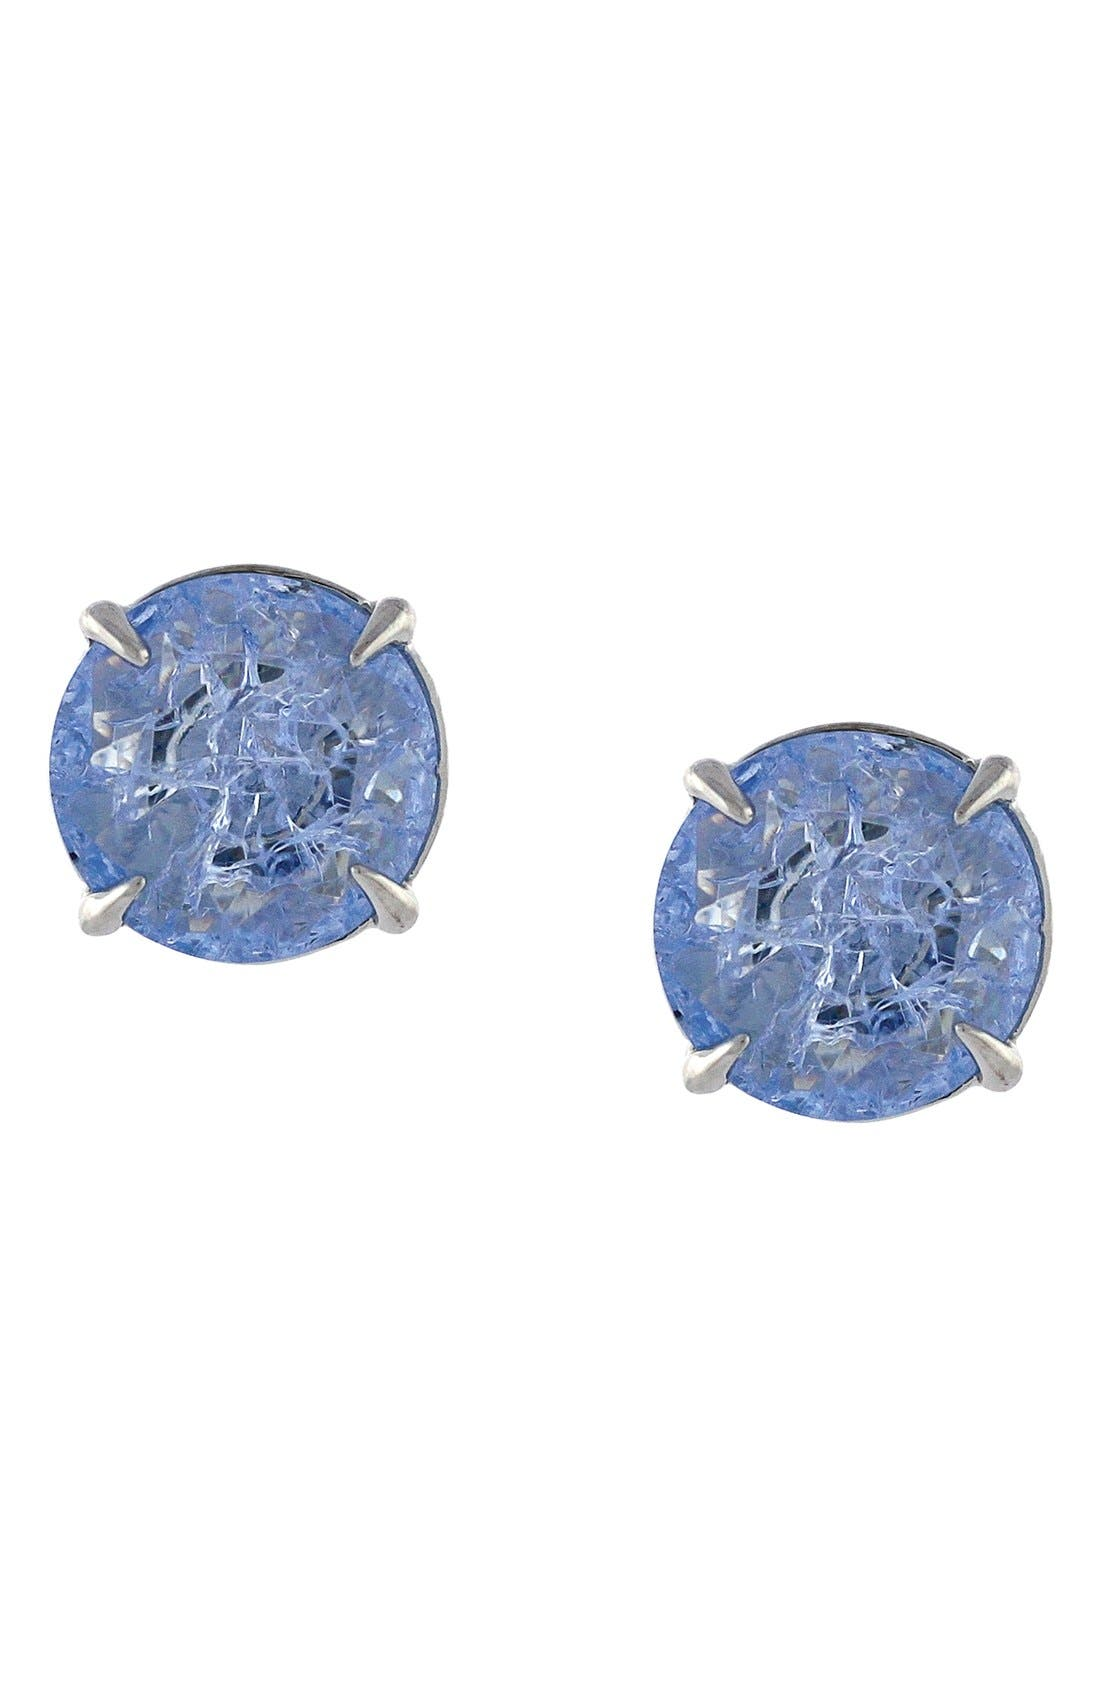 Alternate Image 1 Selected - Vince Camuto 'Iridescent Charm' Stud Earrings